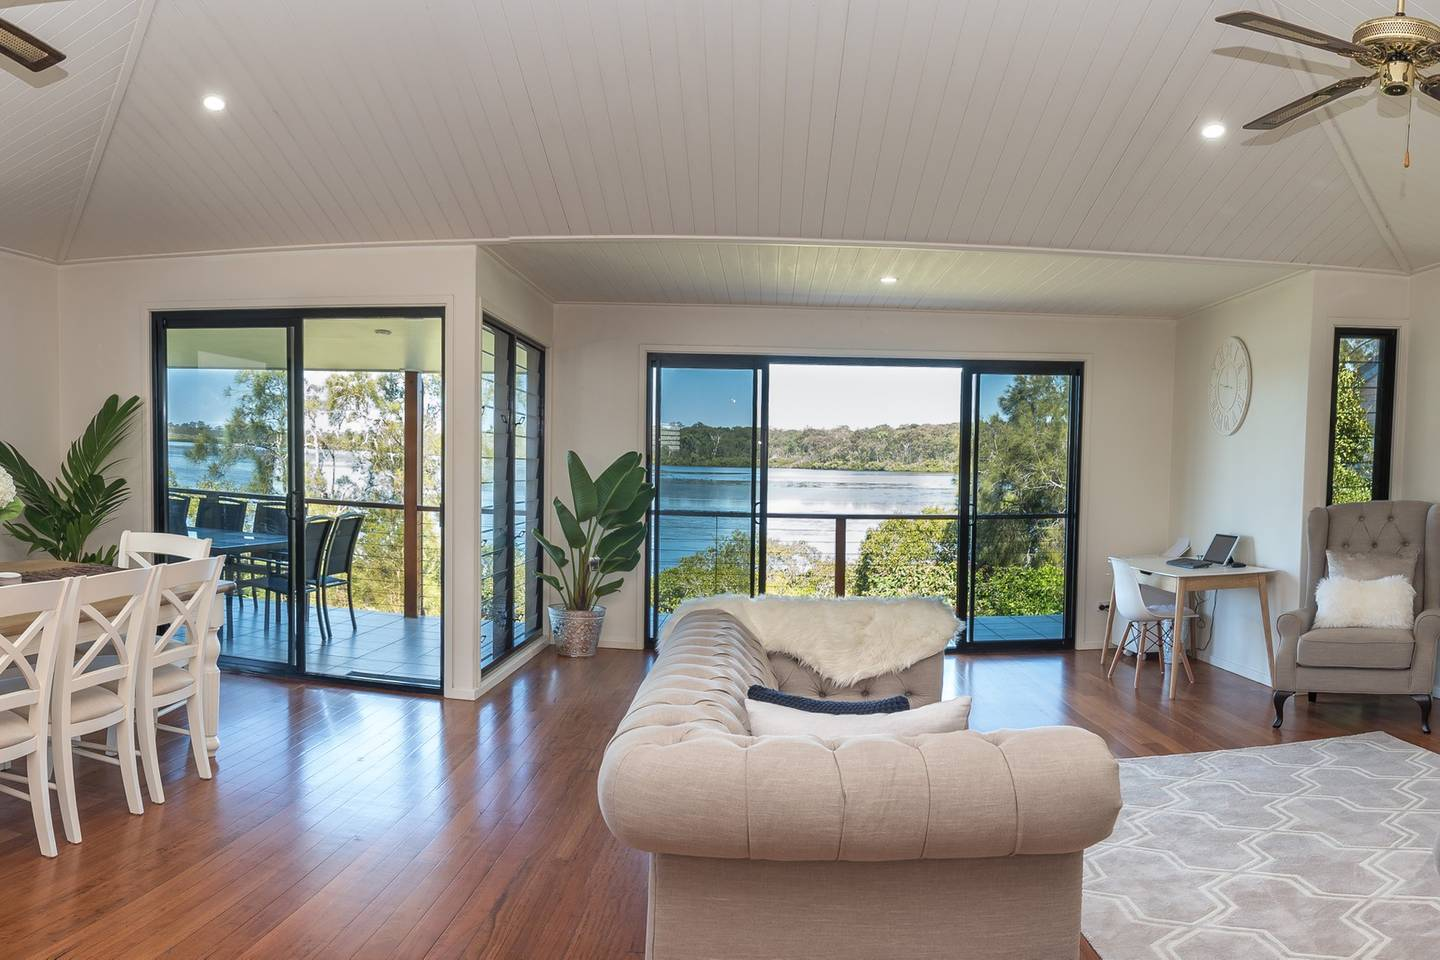 A lakefront holiday home in Tewantin on the Sunshine Coast in Queensland Australia